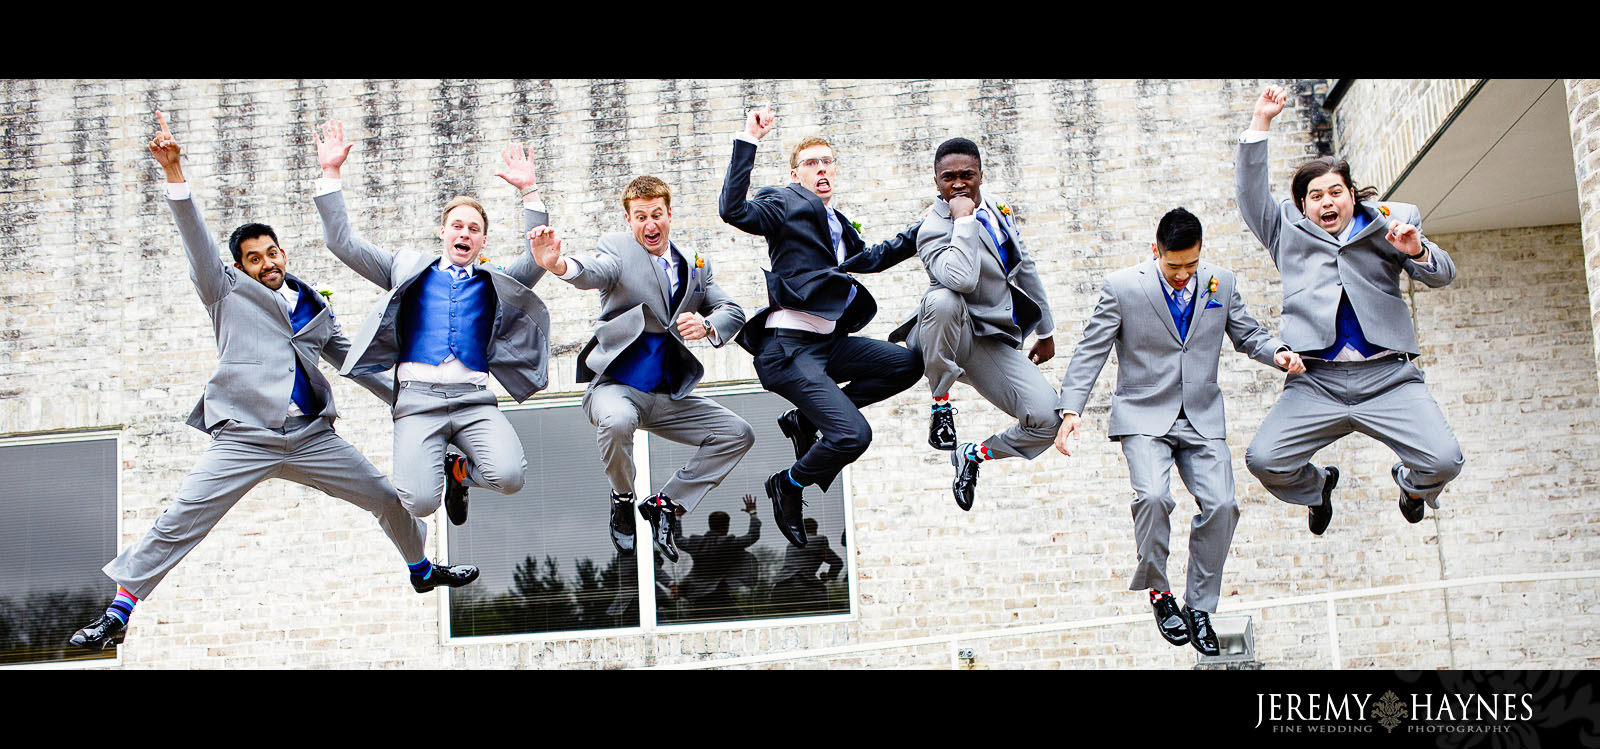 creative-jumping-wedding-party-group-pictures-jeremy-haynes-photographyindianapolis.jpg